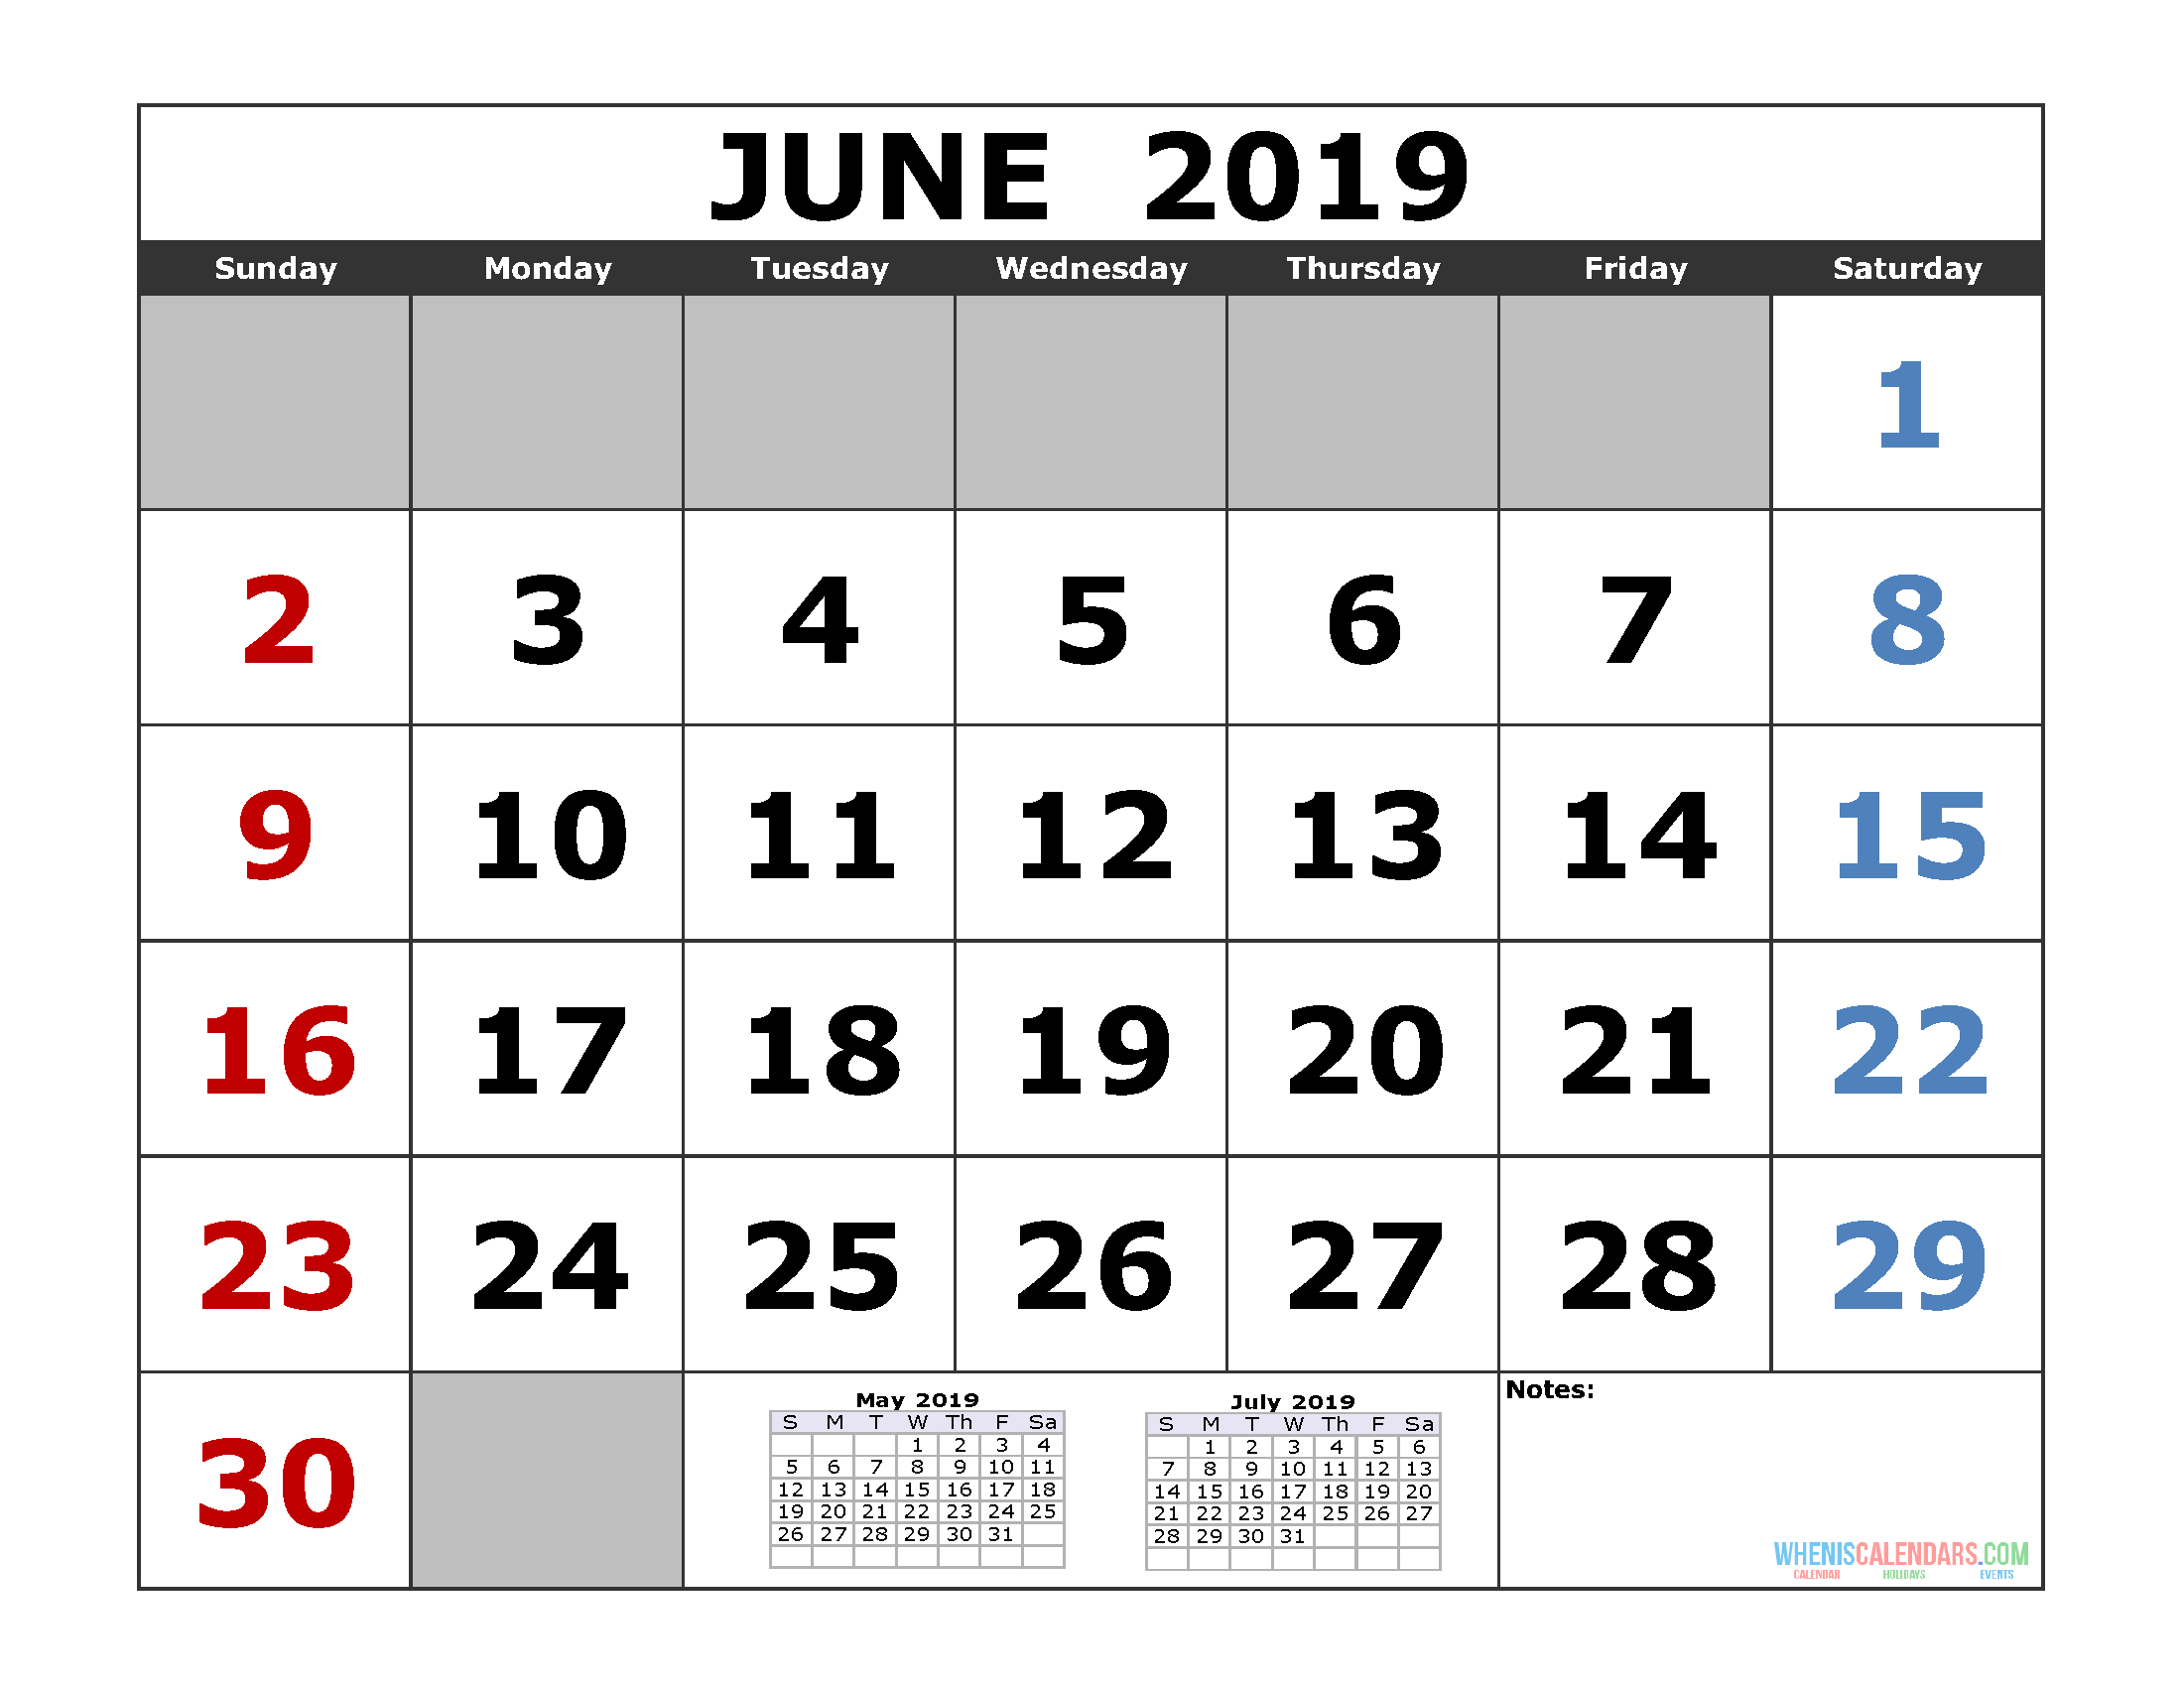 June 2019 Printable Calendar Template (3 Month Calendar) | Free June 7 2019 Calendar